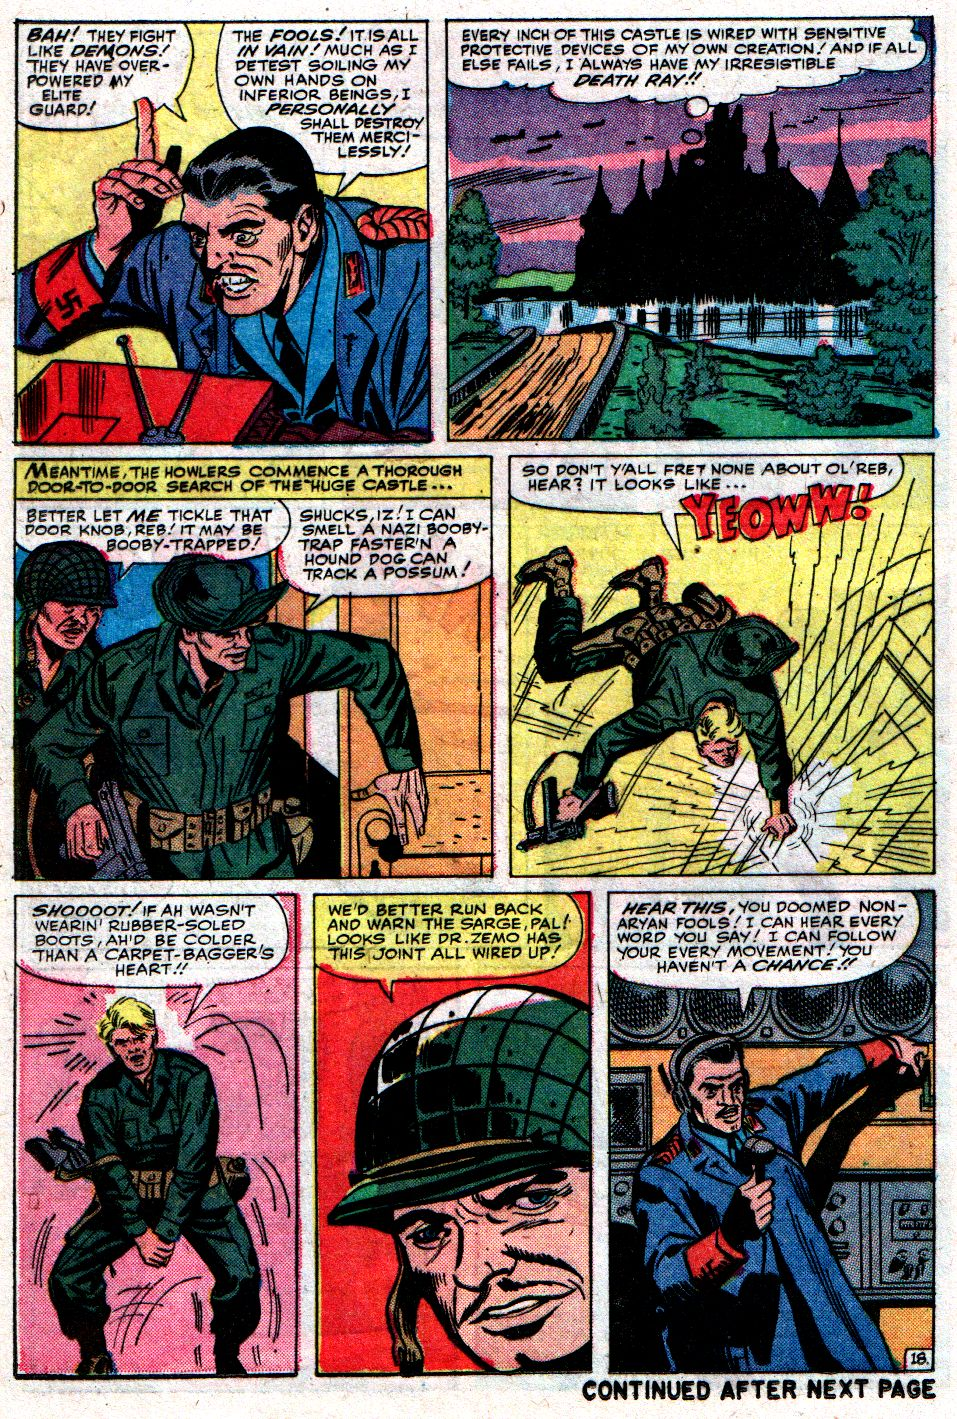 Read online Sgt. Fury comic -  Issue #8 - 24